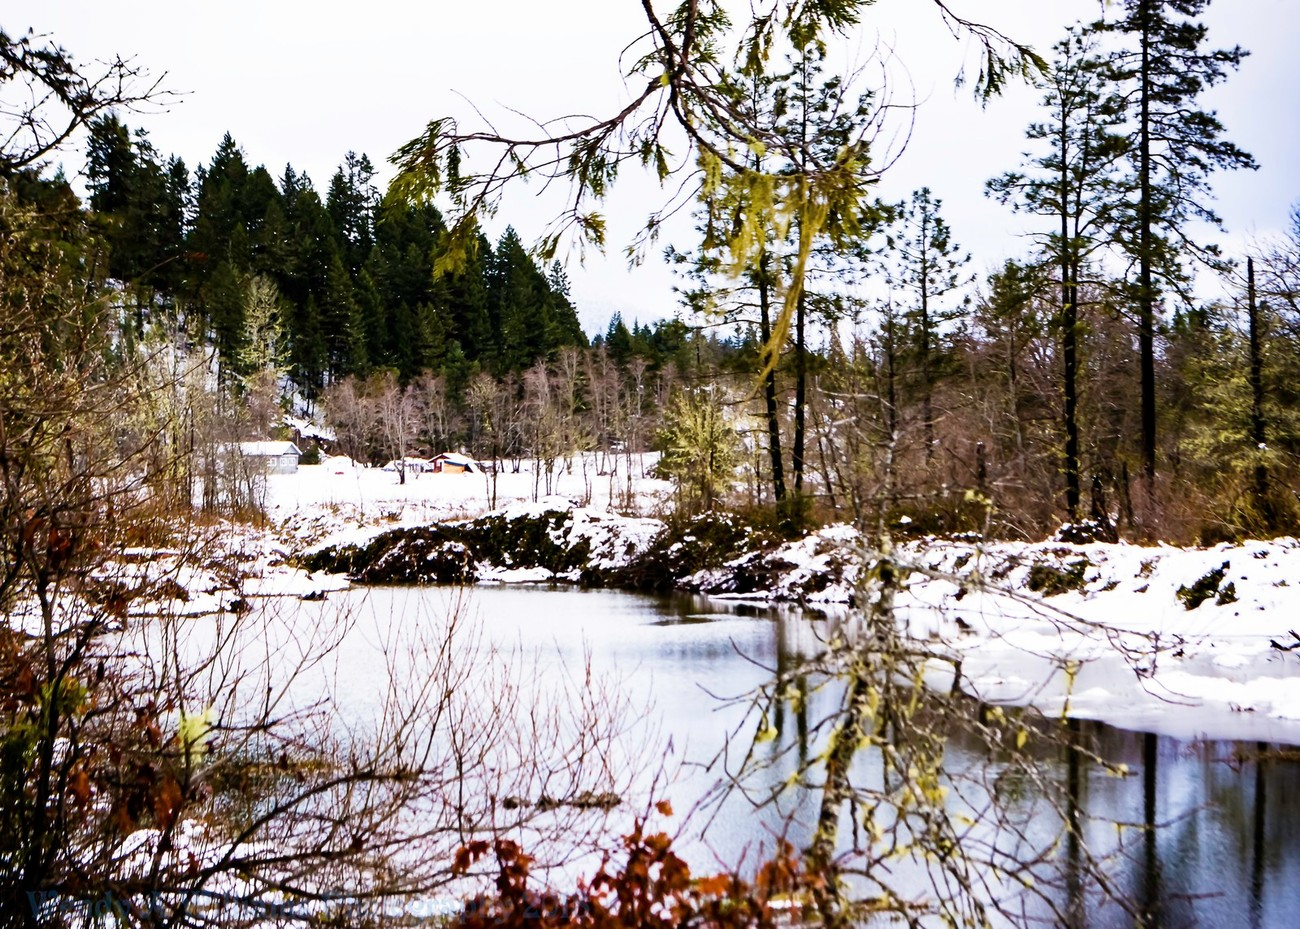 This year we had days of snow in Southern Oregon and then it would disappear so on this day I went out to catch the beauty of snow before it left again.